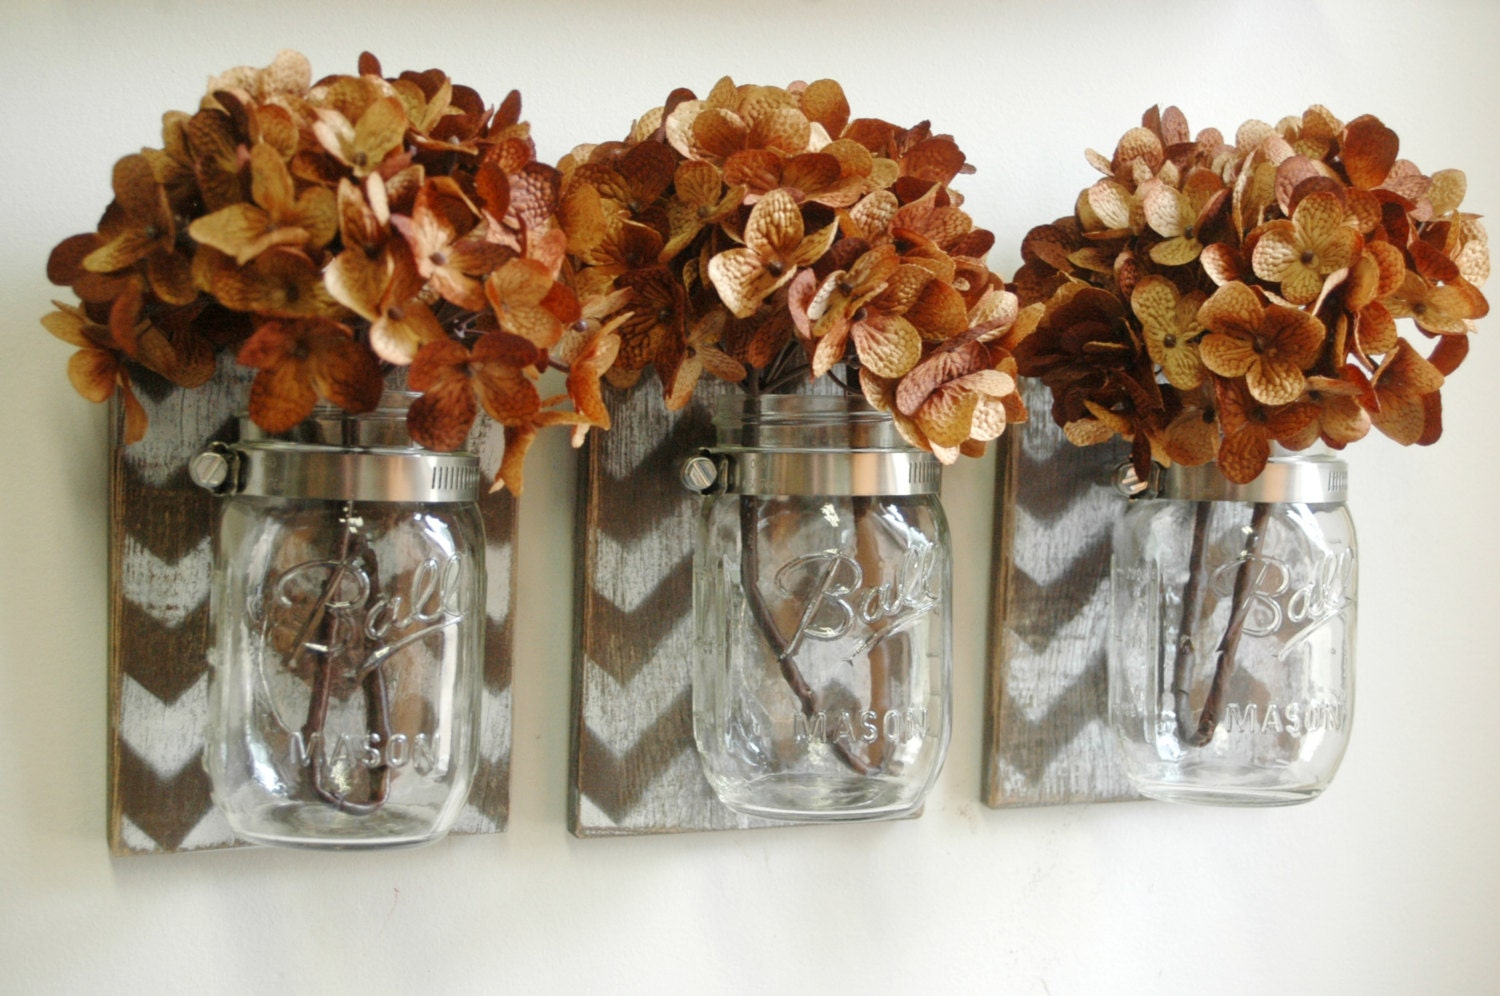 Chevron Wall Decor Mason Jar Farmhouse Decor Fixer Upper Syle Deco Shabby